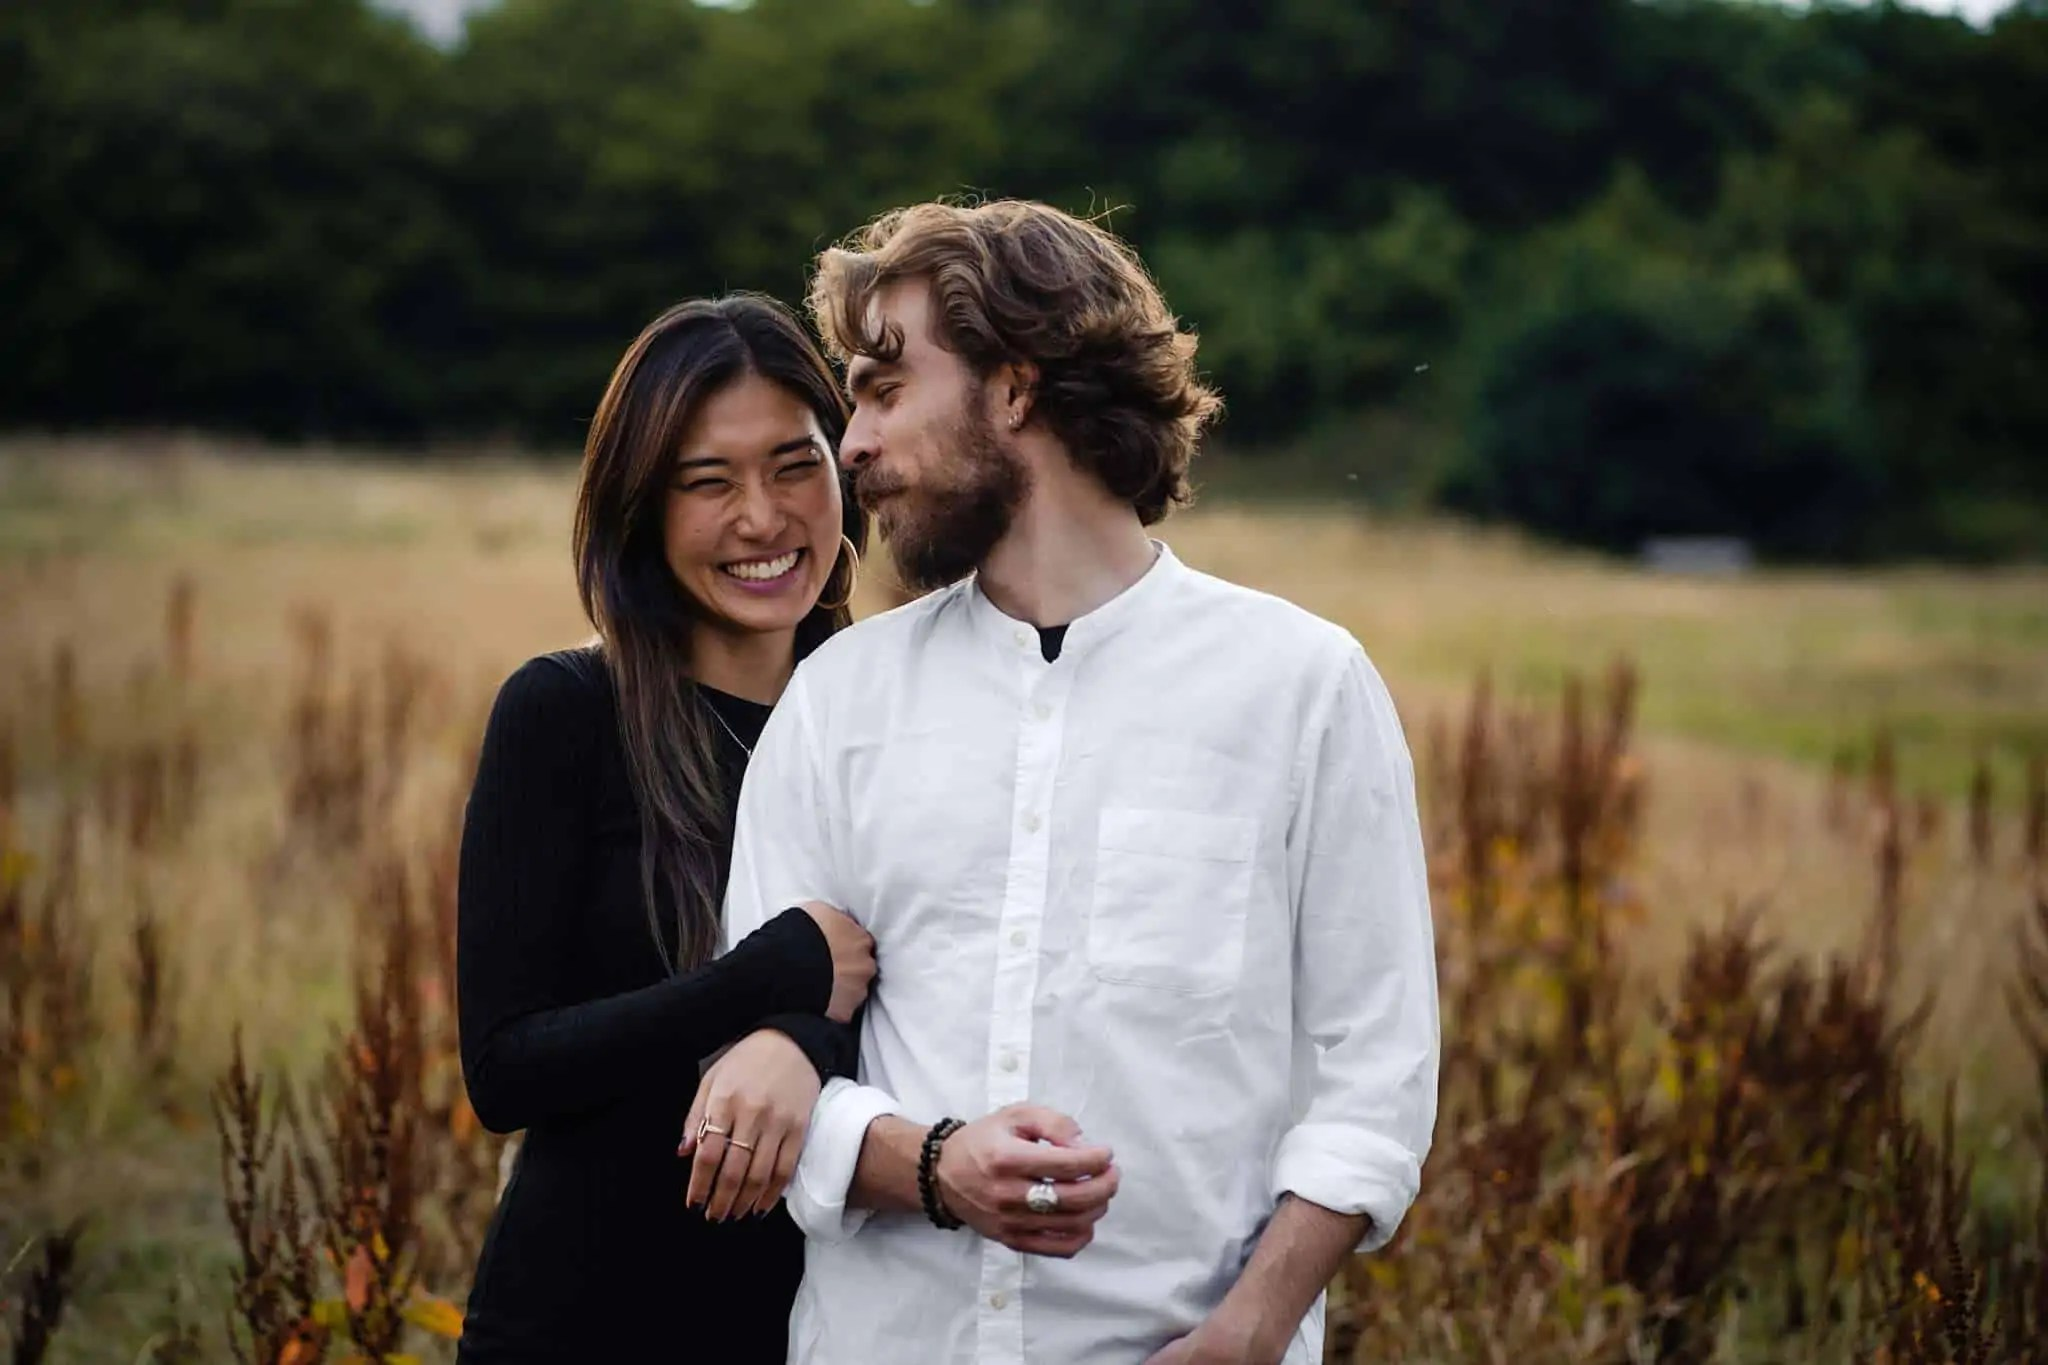 An engaged couple laughing during an engagement shoot on Hampstead Heath